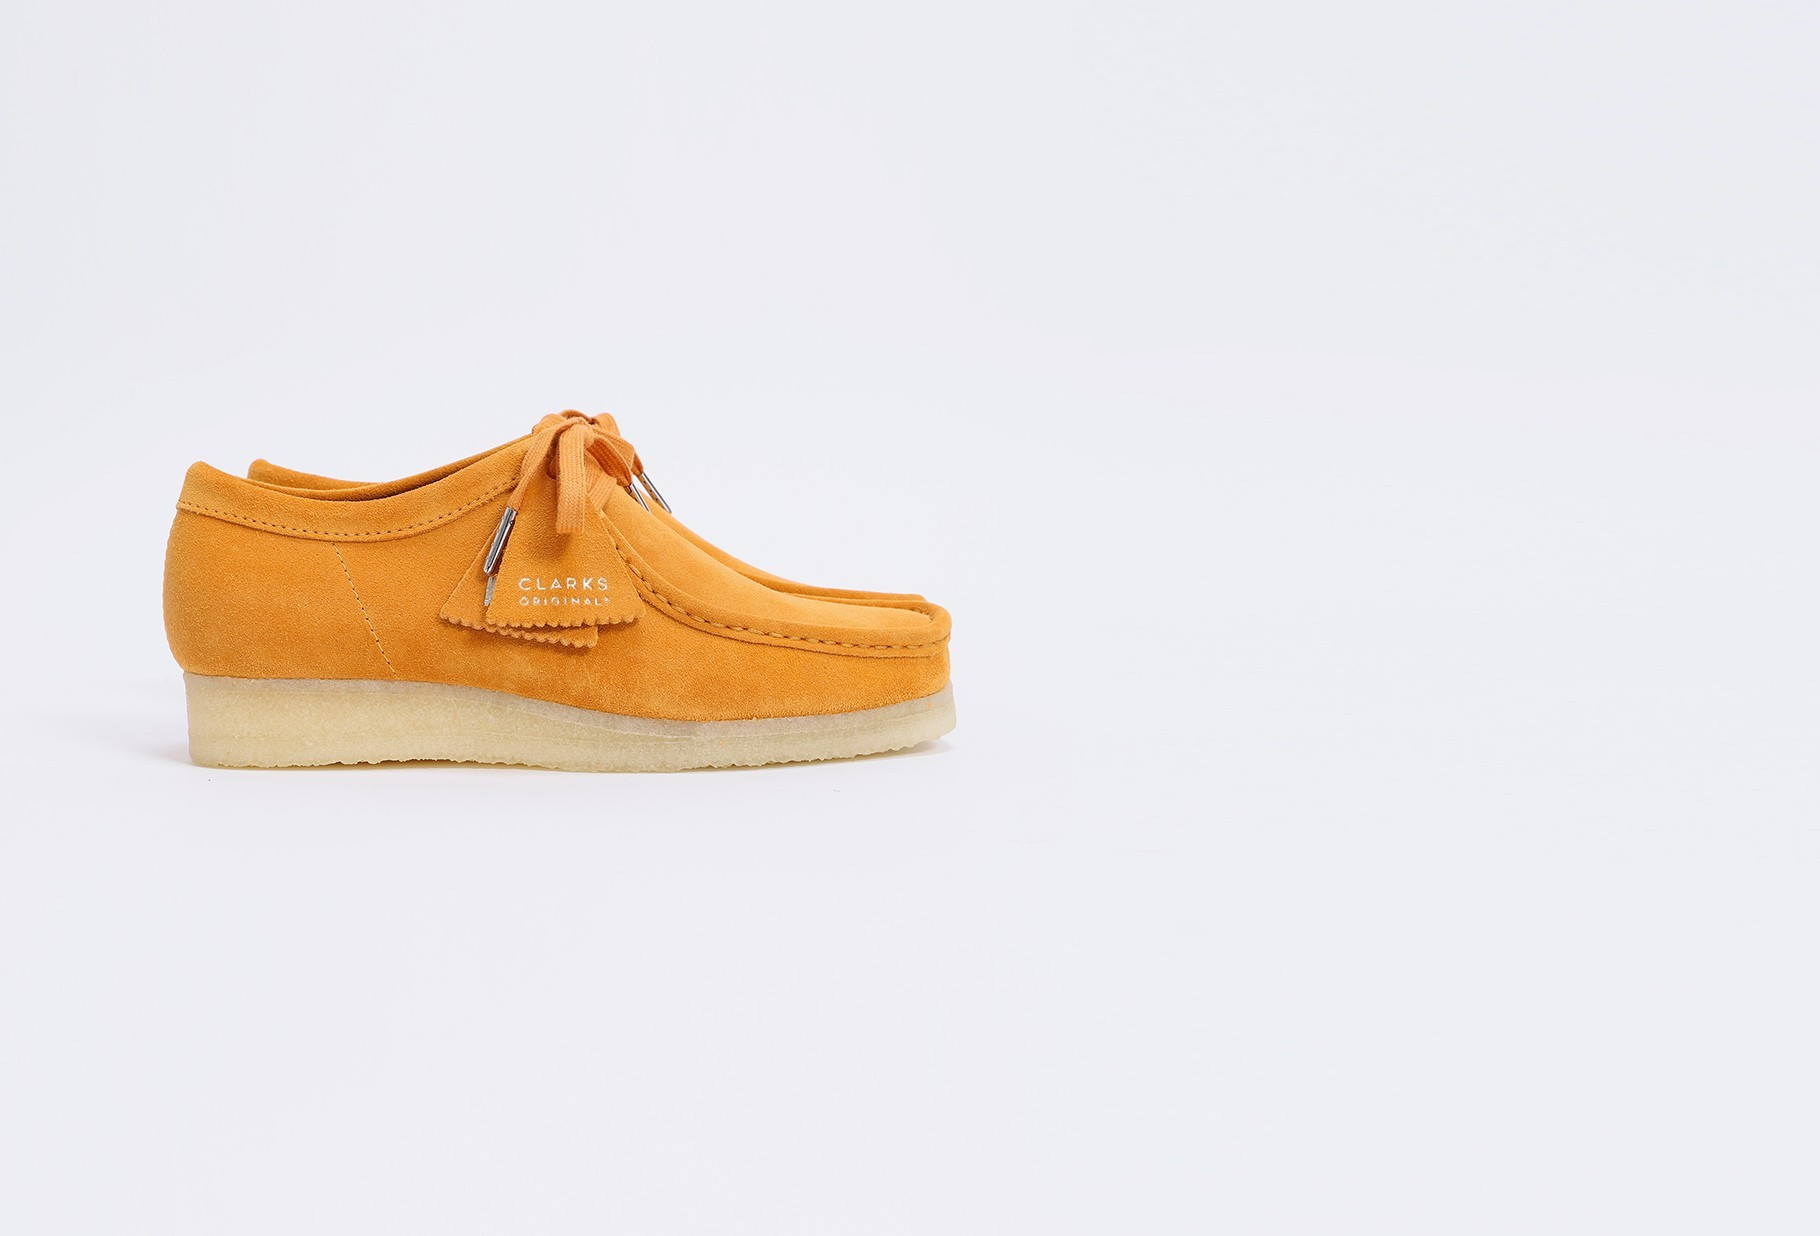 CLARKS ORIGINALS / Wallabee suede Tumeric